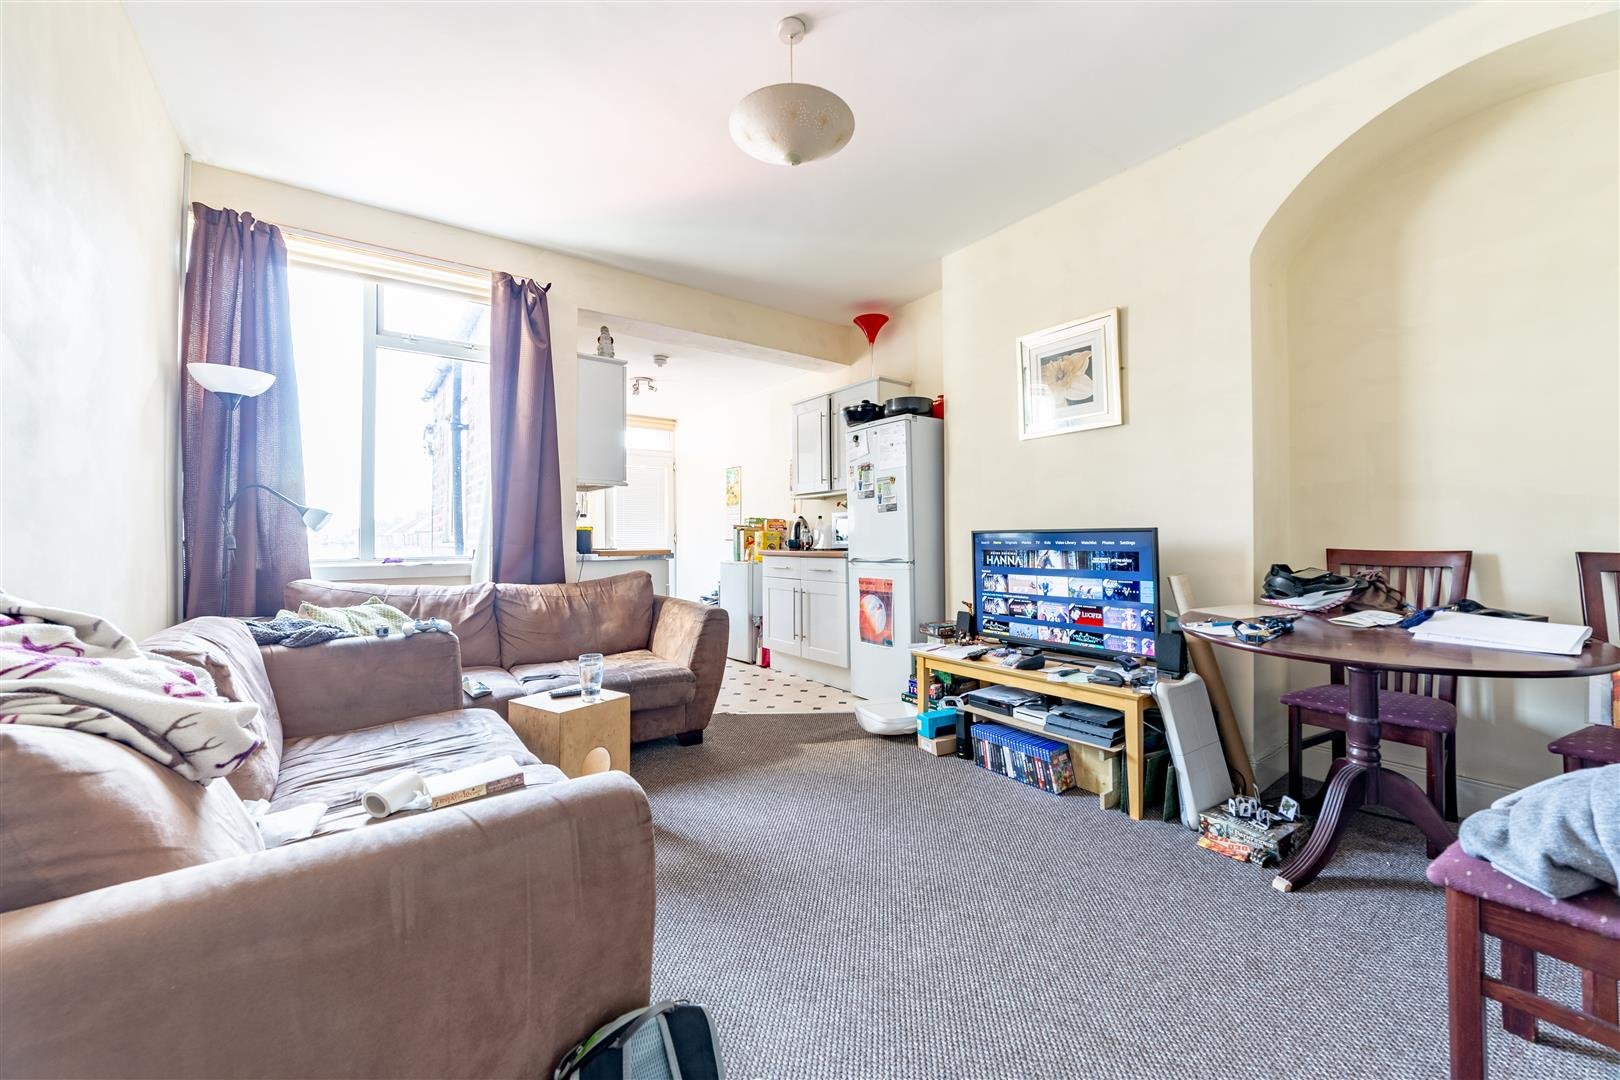 4 bed maisonette for sale in Newcastle Upon Tyne, NE7 7DR  - Property Image 1